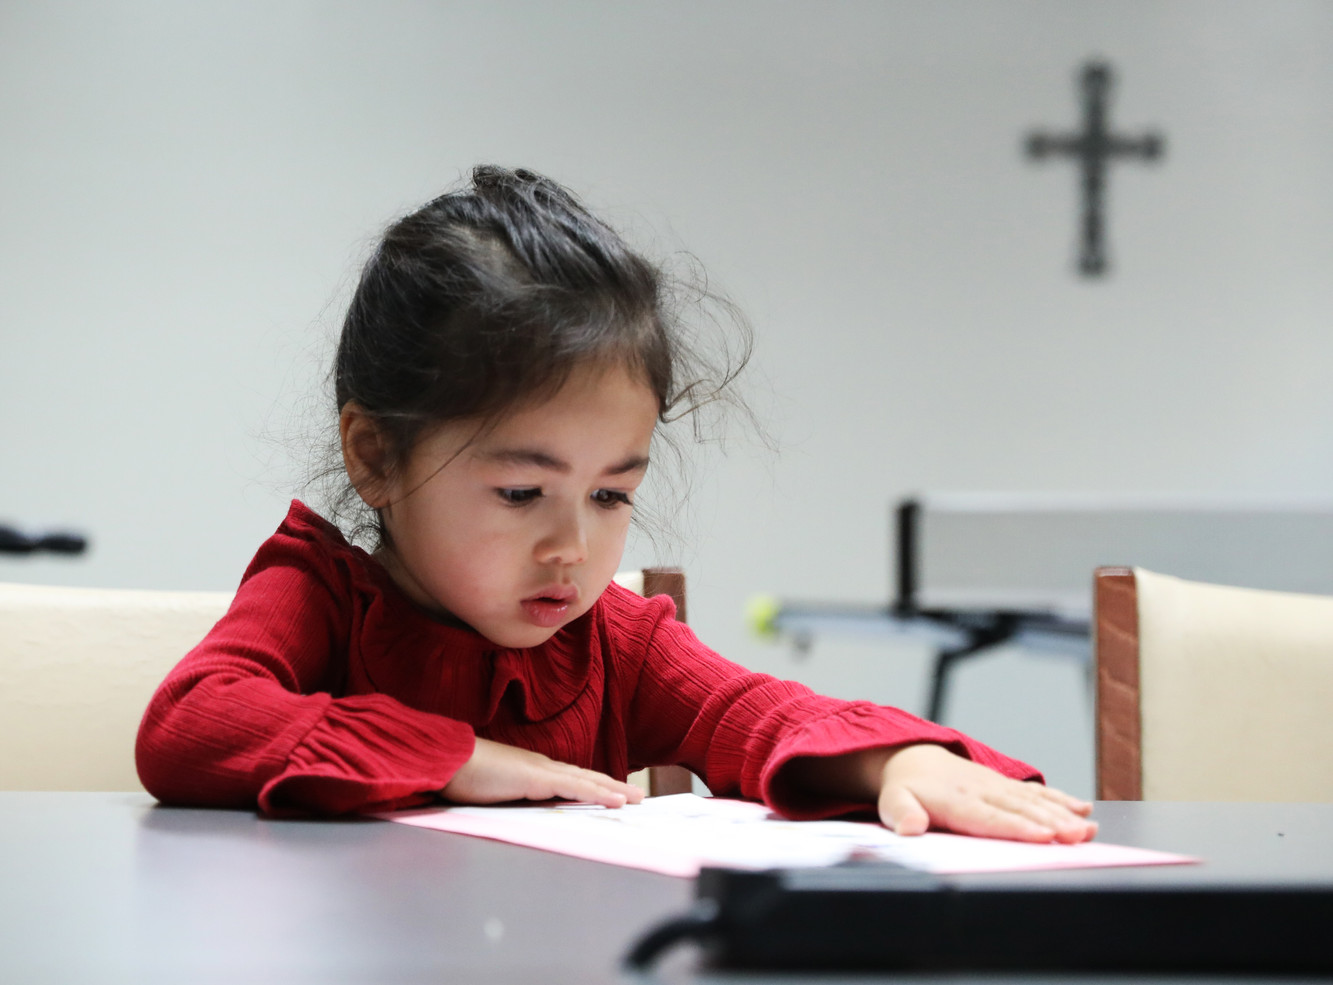 Jane sticks two papers with glue on Sunday, November 10, 2019 in Children's Sunday School in International Community Church, Columbia, Missouri. The whole family go to church every Sunday.